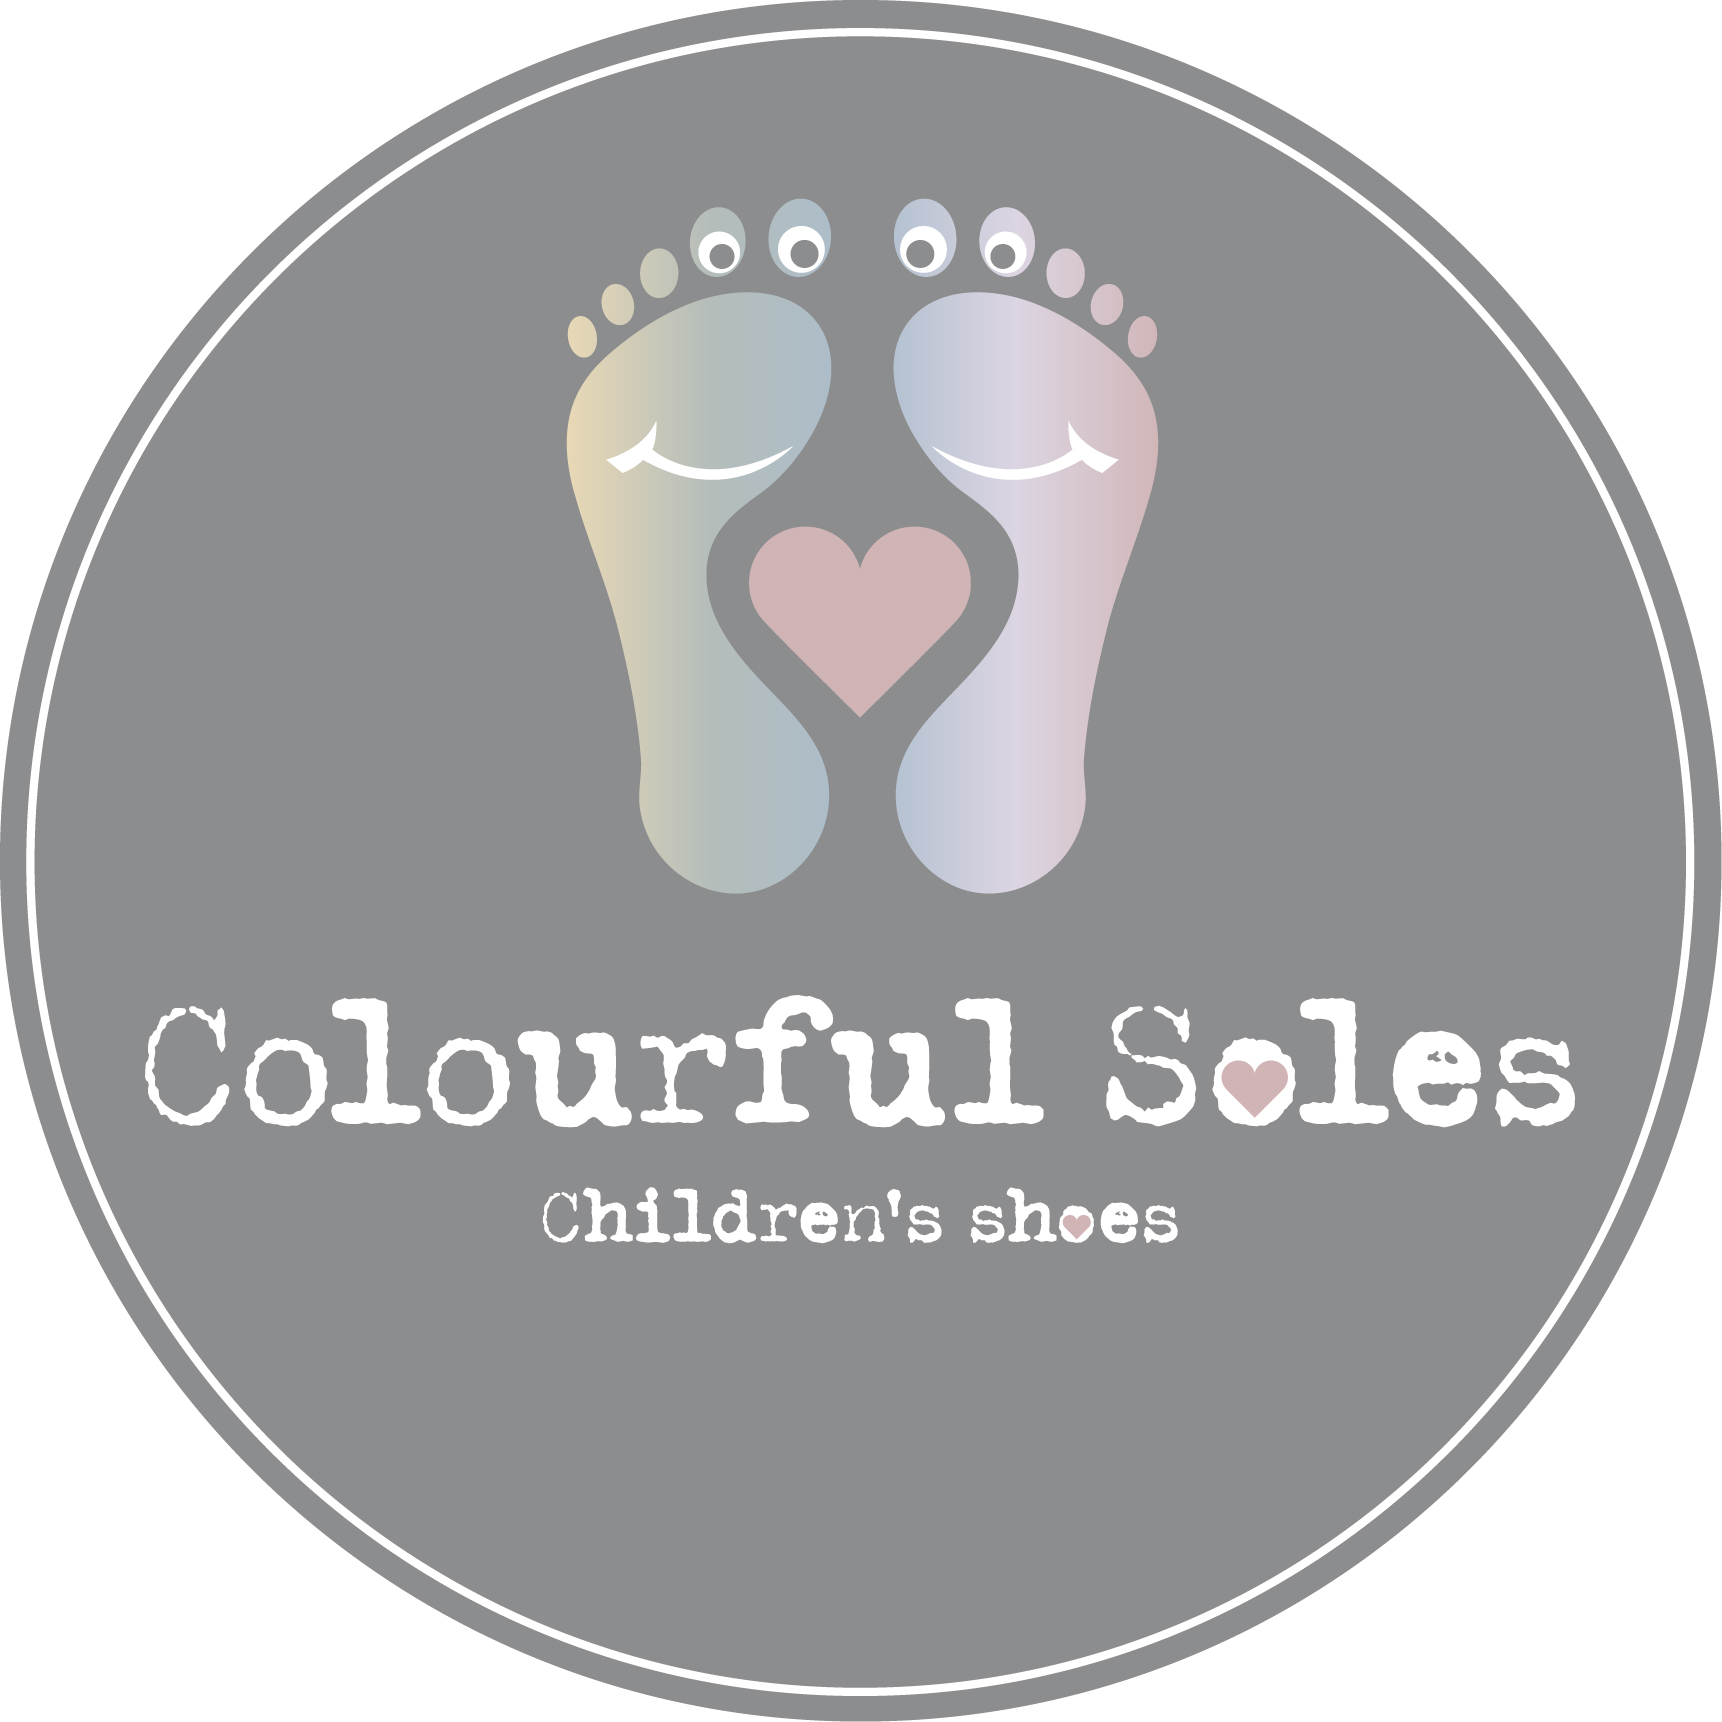 Colourful Soles Ltd's logo